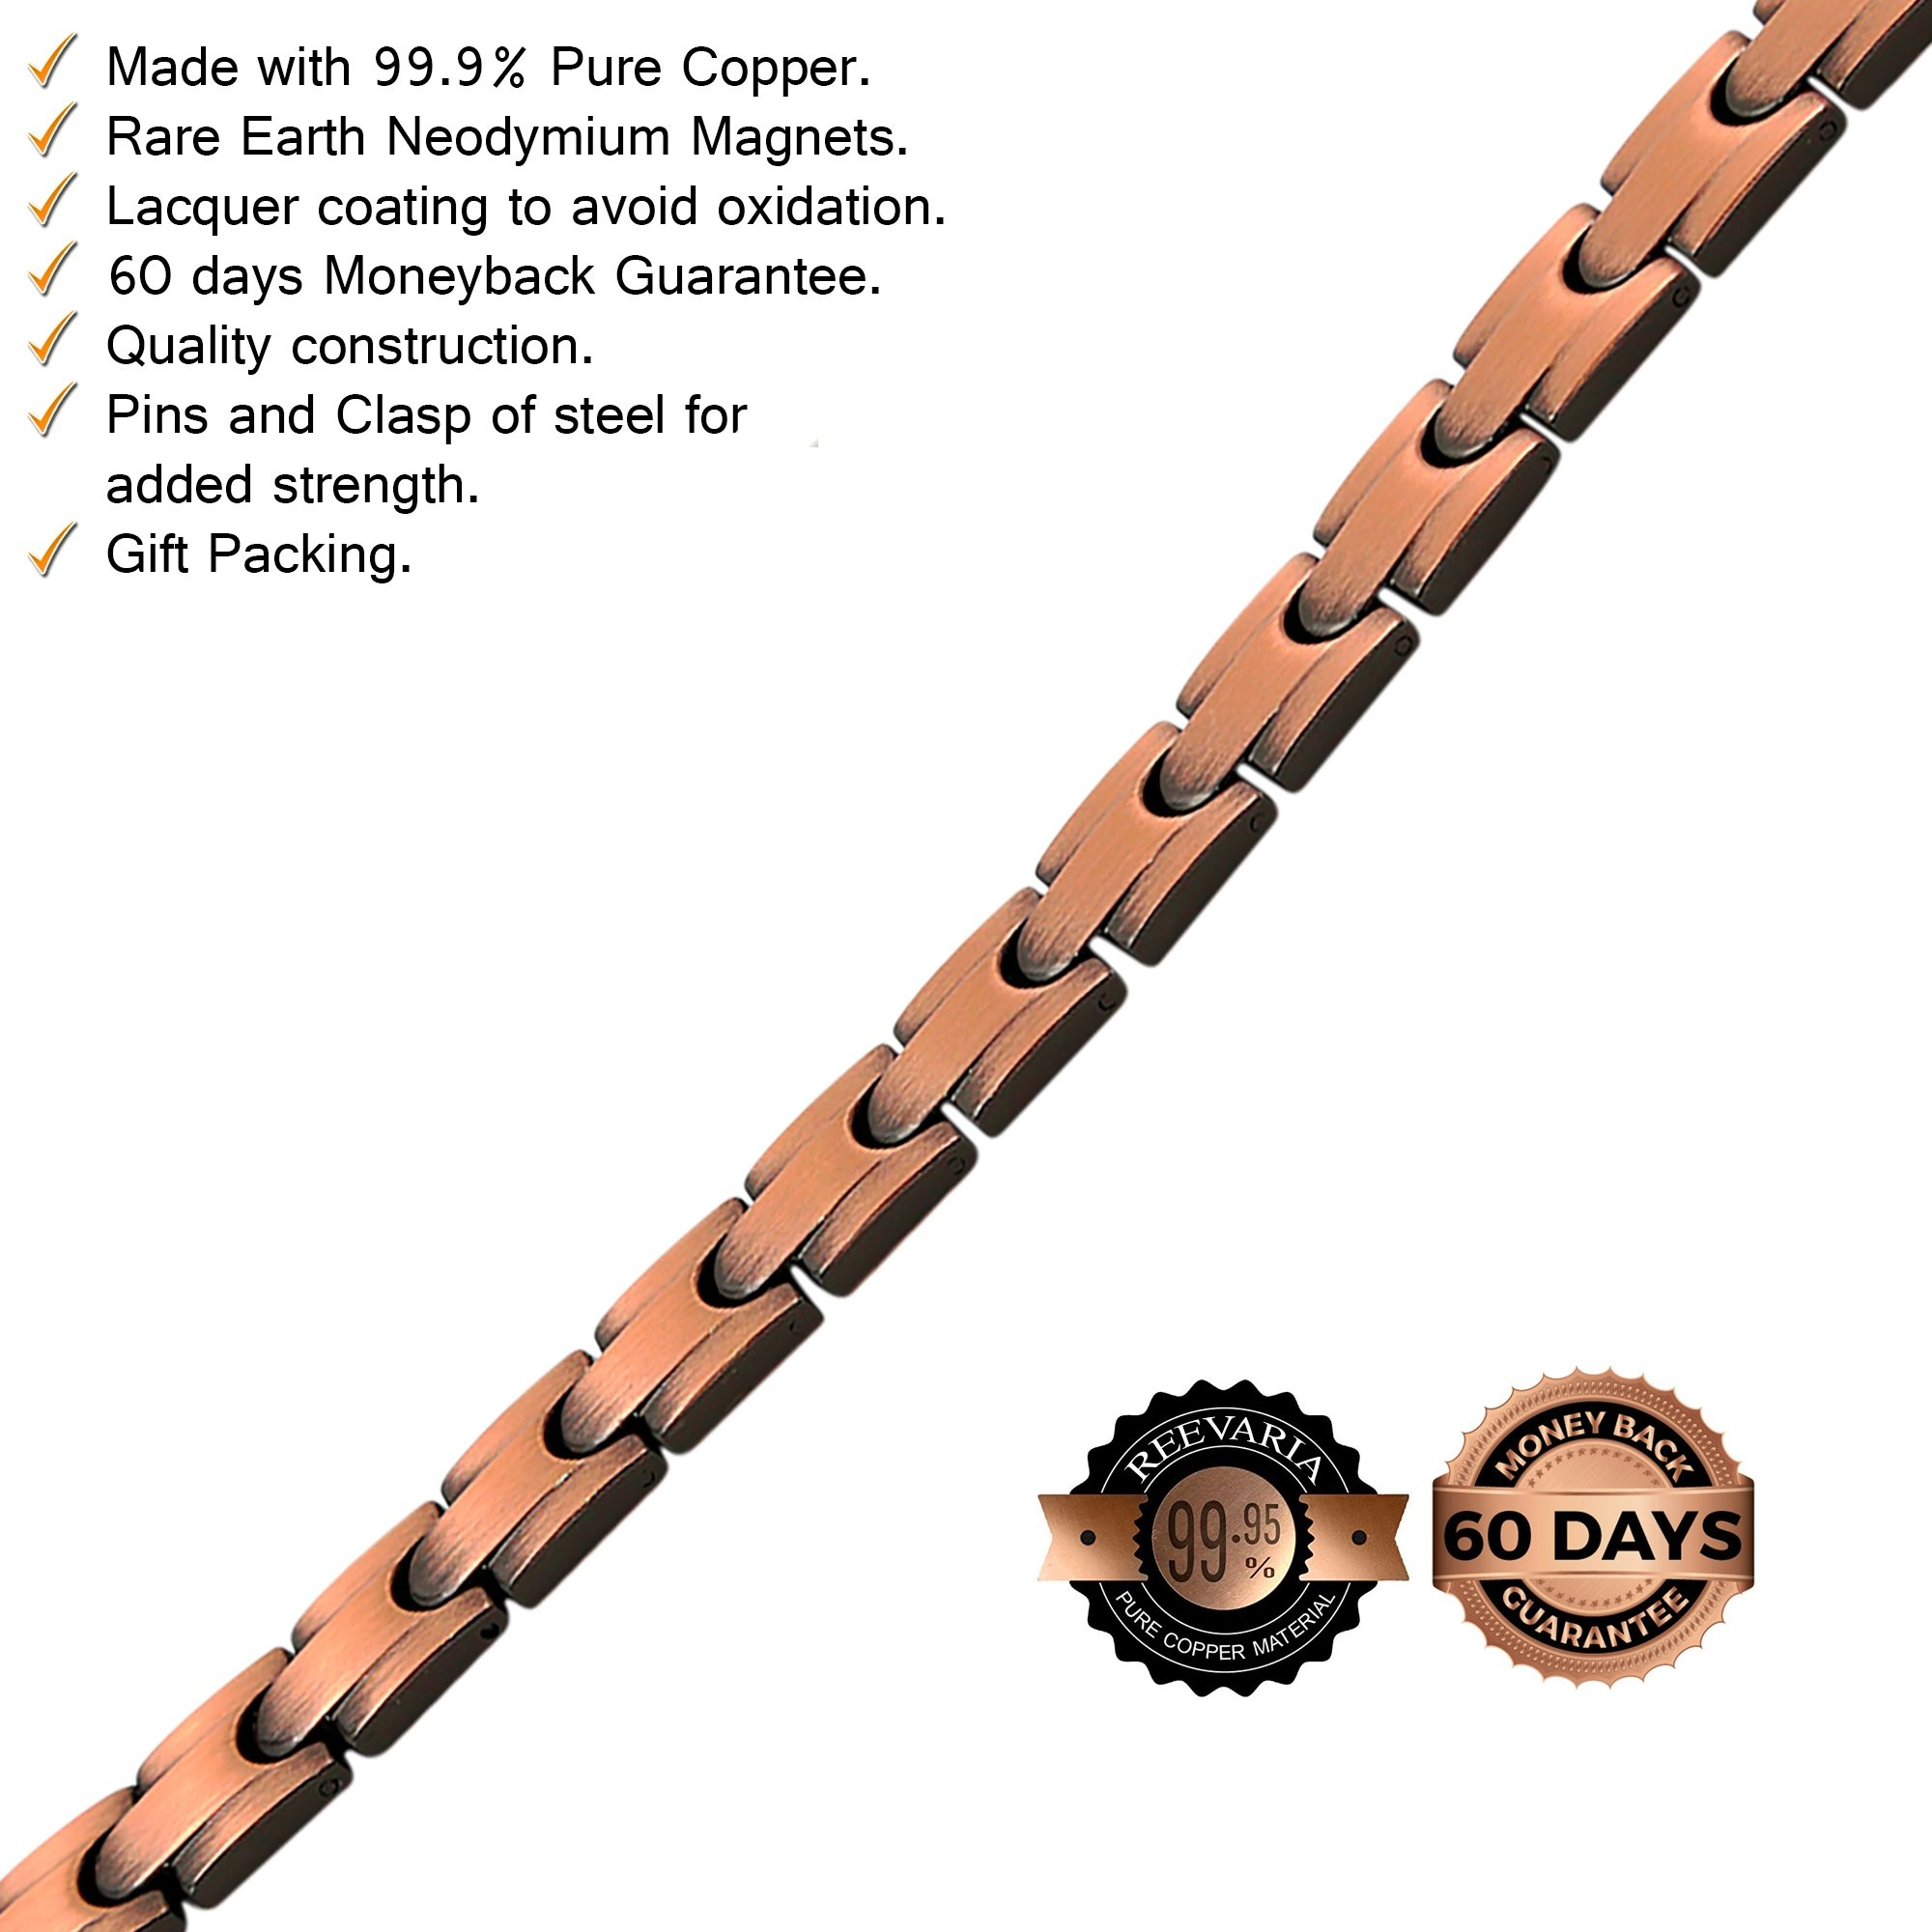 Reevaria Mens Elegant Guaranteed 99.9% Pure Copper Magnetic Therapy Bracelet Pain Relief Arthritis Carpal Tunnel, 3500 Gauss Links by Reevaria (Image #6)